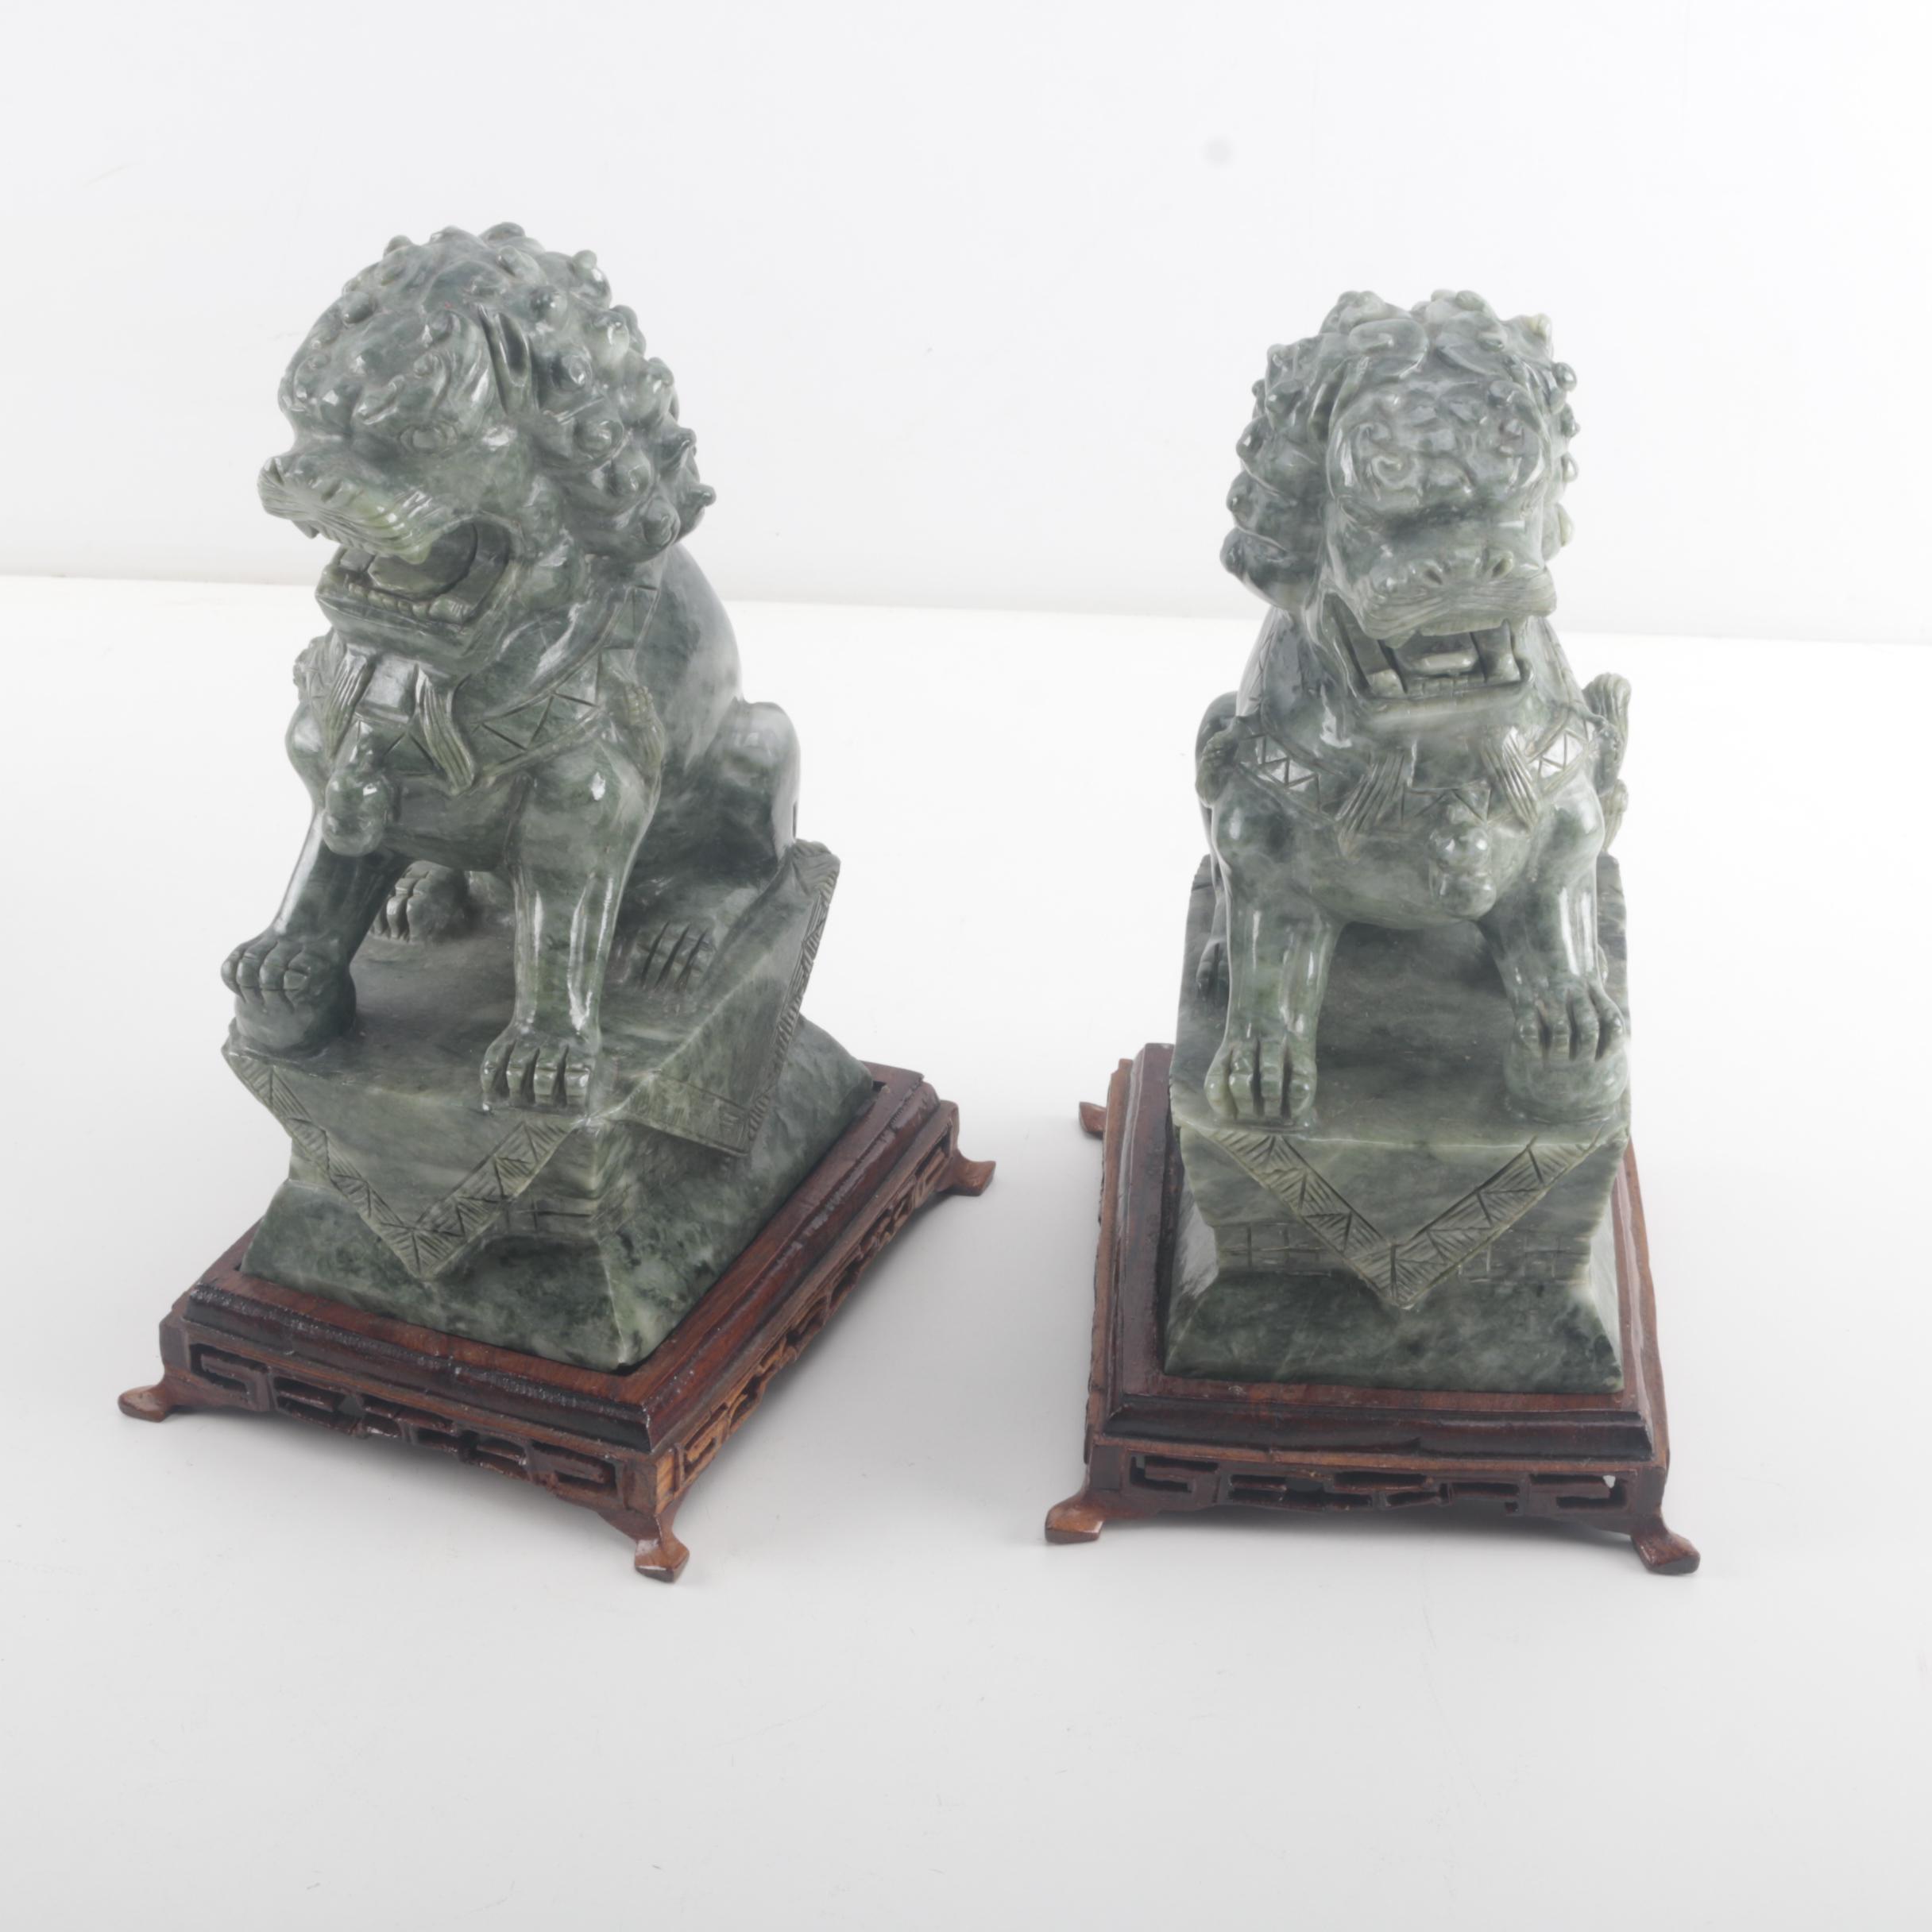 Pair of Nephrite Asian Figures on Mahogany Bases